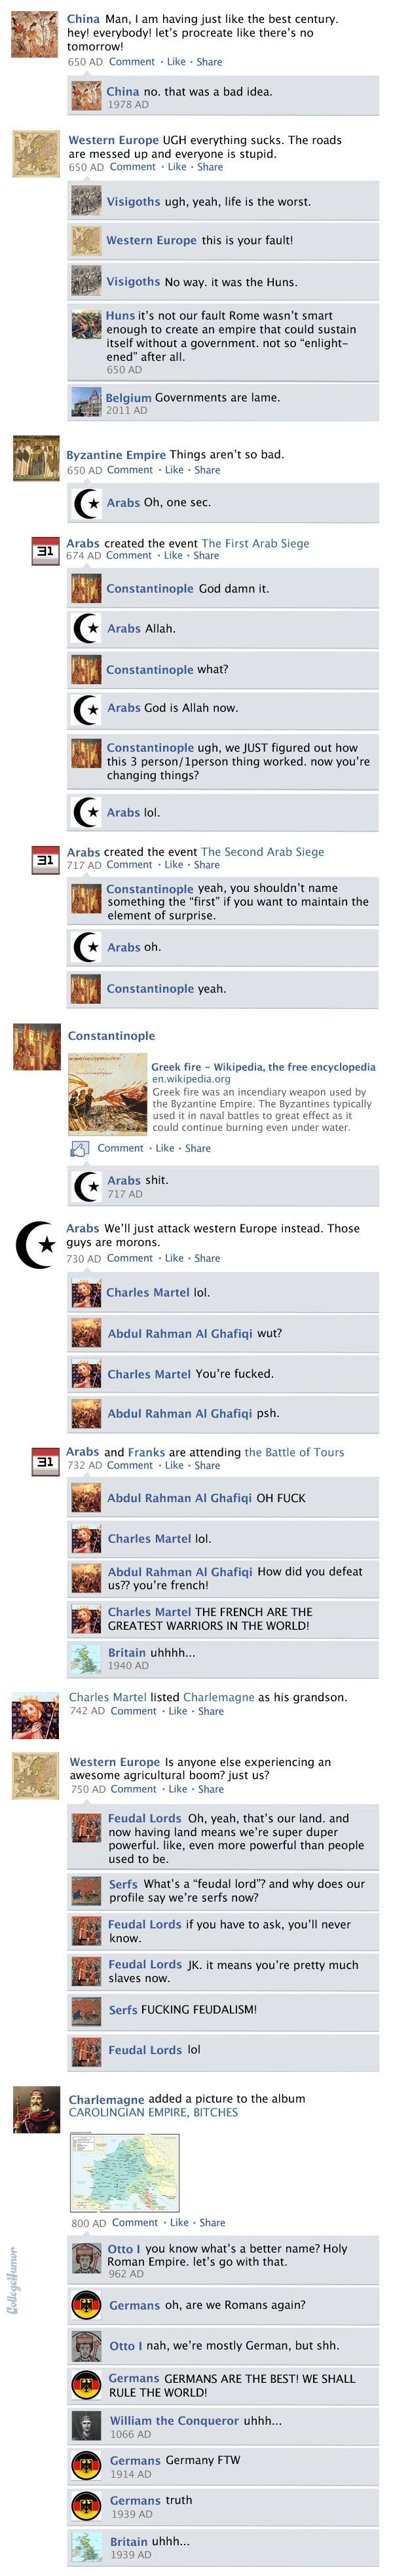 If The Universe Had A Facebook Newsfeed, This Is What It Would Look Like #historyoftheworld